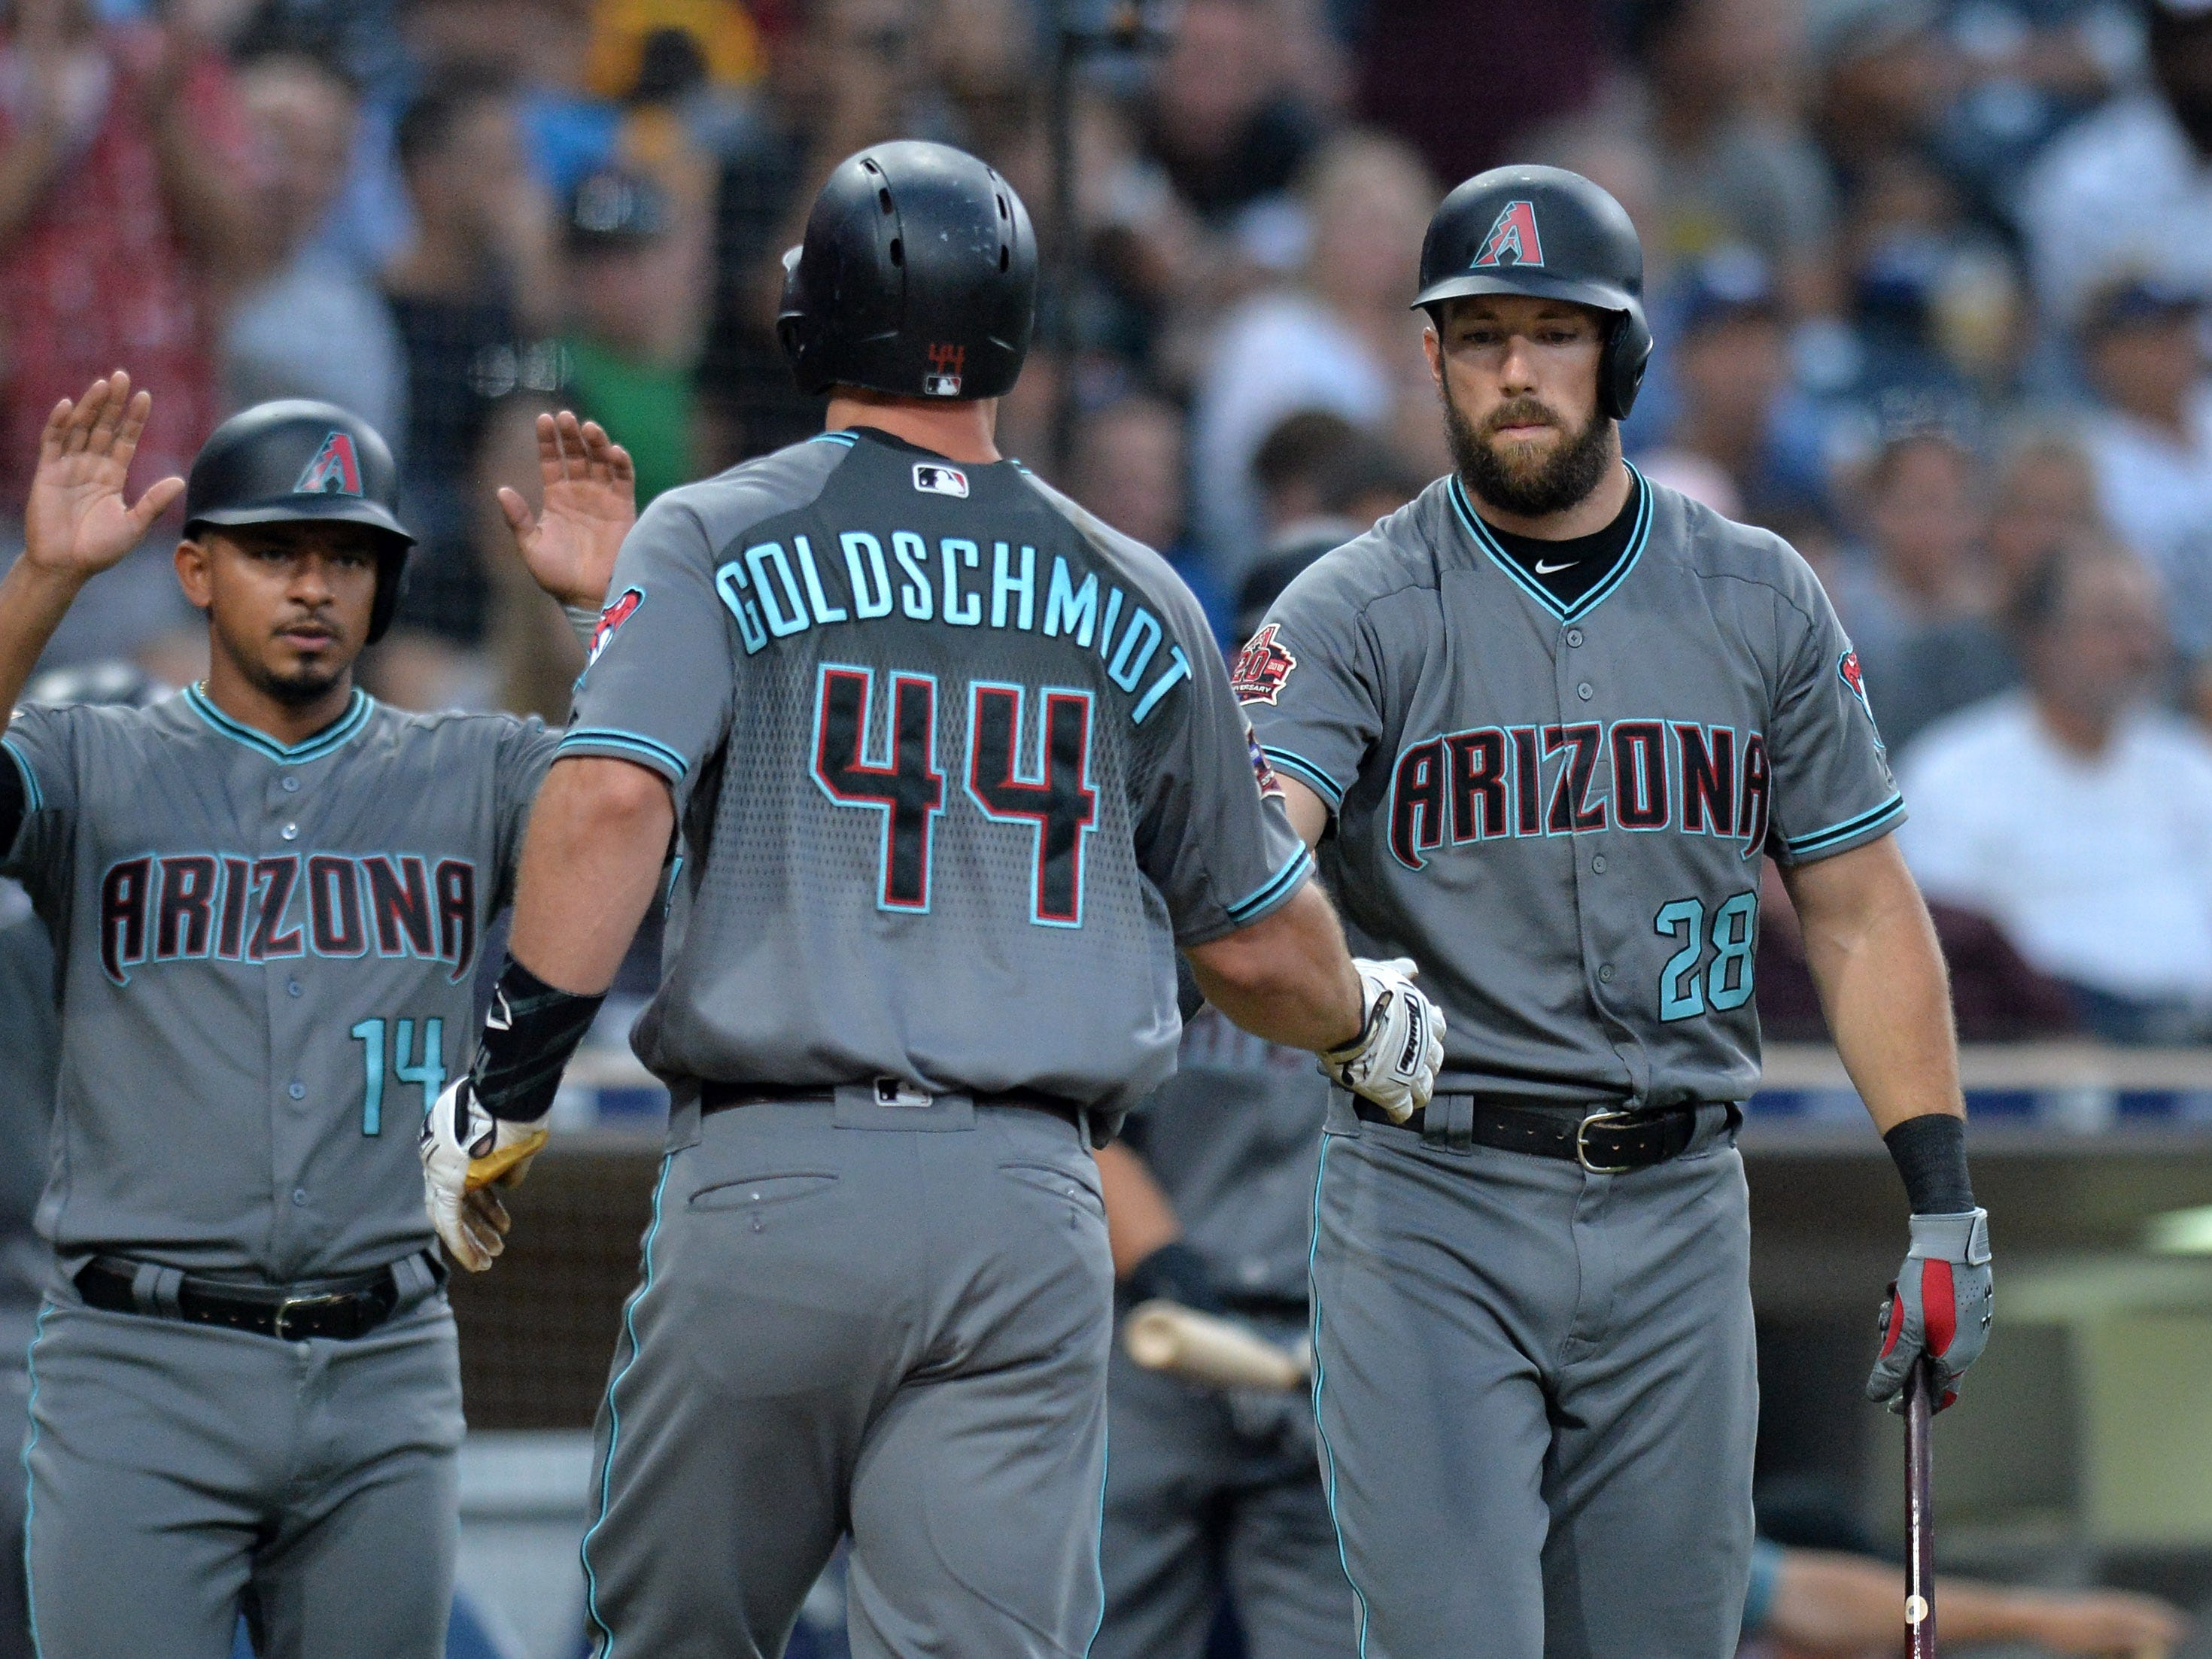 Aug 17, 2018: Arizona Diamondbacks first baseman Paul Goldschmidt (44) is congratulated by right fielder Steven Souza Jr. (28) and third baseman Eduardo Escobar (14) after hitting a two run home run during the first inning against the San Diego Padres at Petco Park.